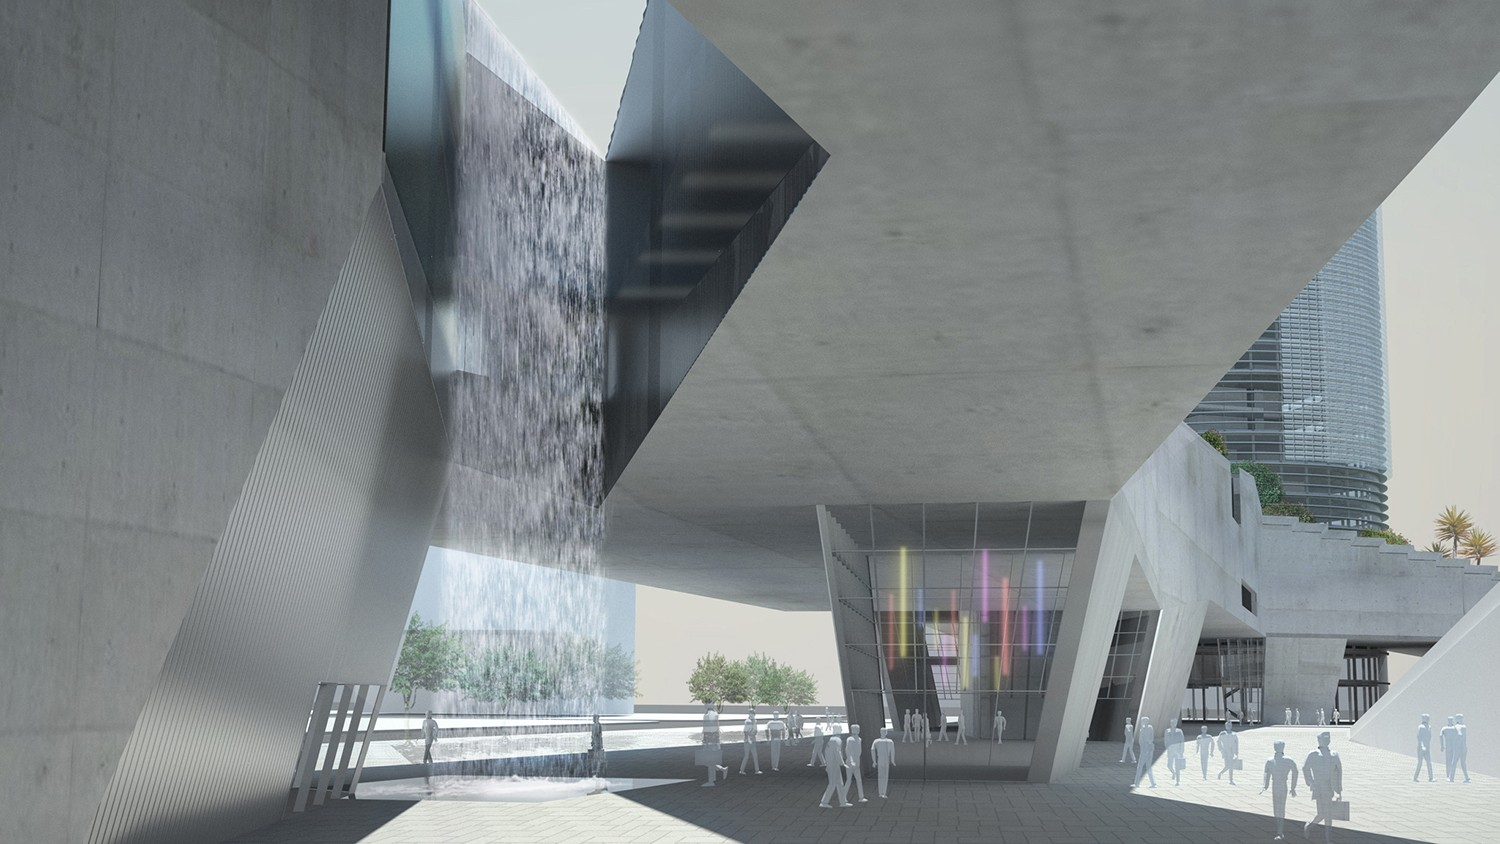 https://stevenholl.sfo2.digitaloceanspaces.com/uploads/projects/project-images/StevenHollArchitects_Shenzhen4_03_UNDER BRACKET_WH.jpg